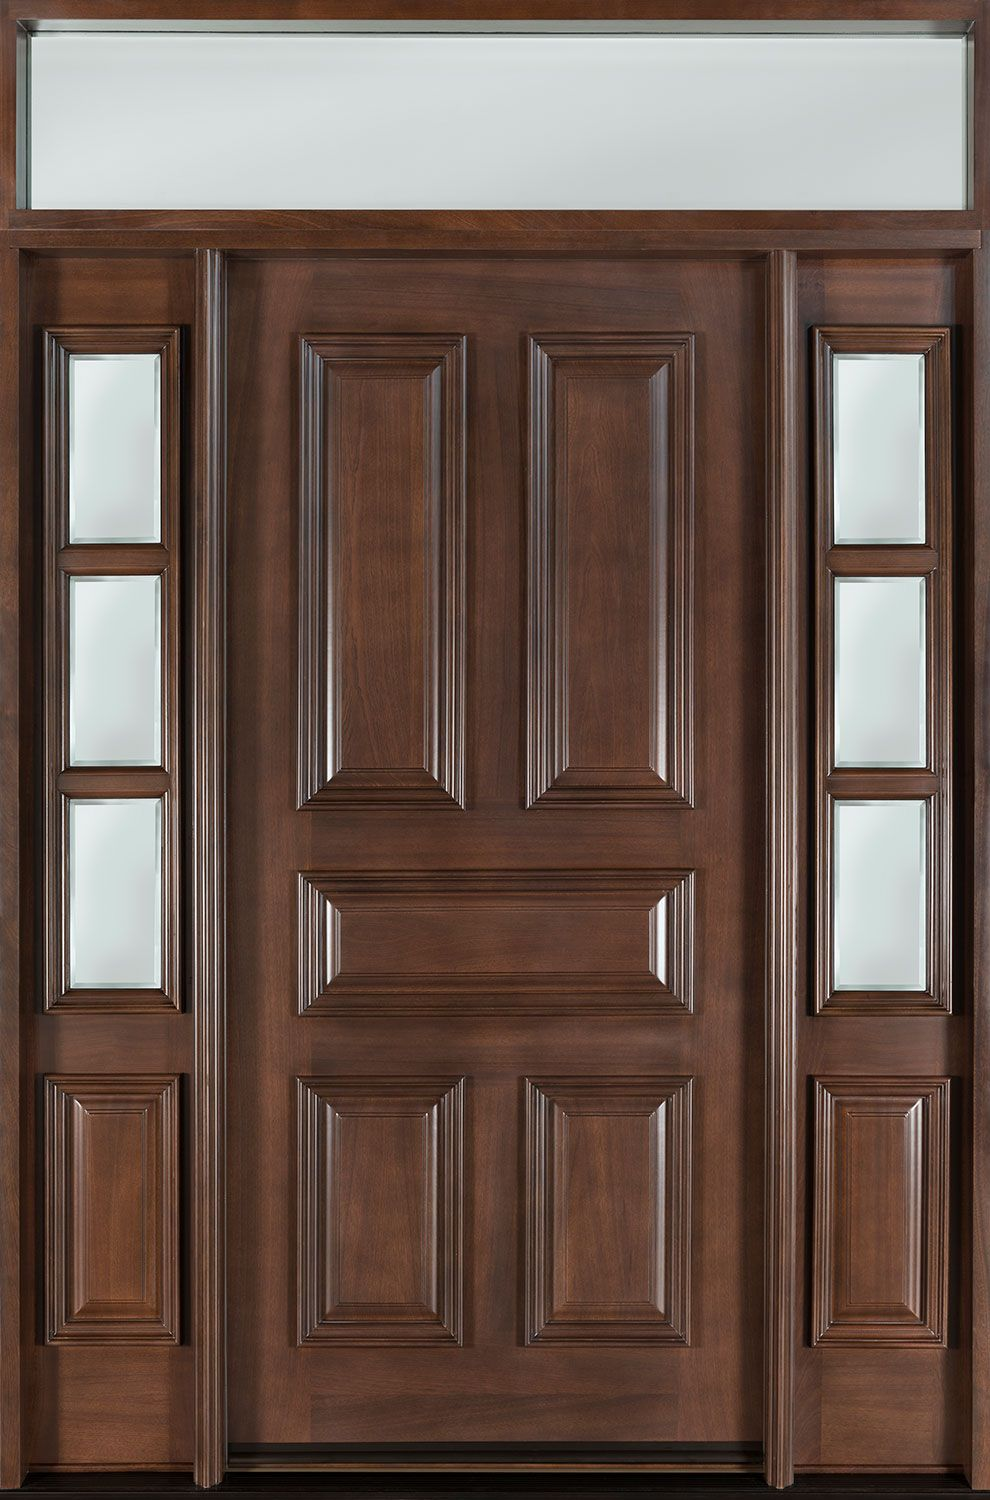 Mahogany solid wood front entry door single with 2 sidelites w transom